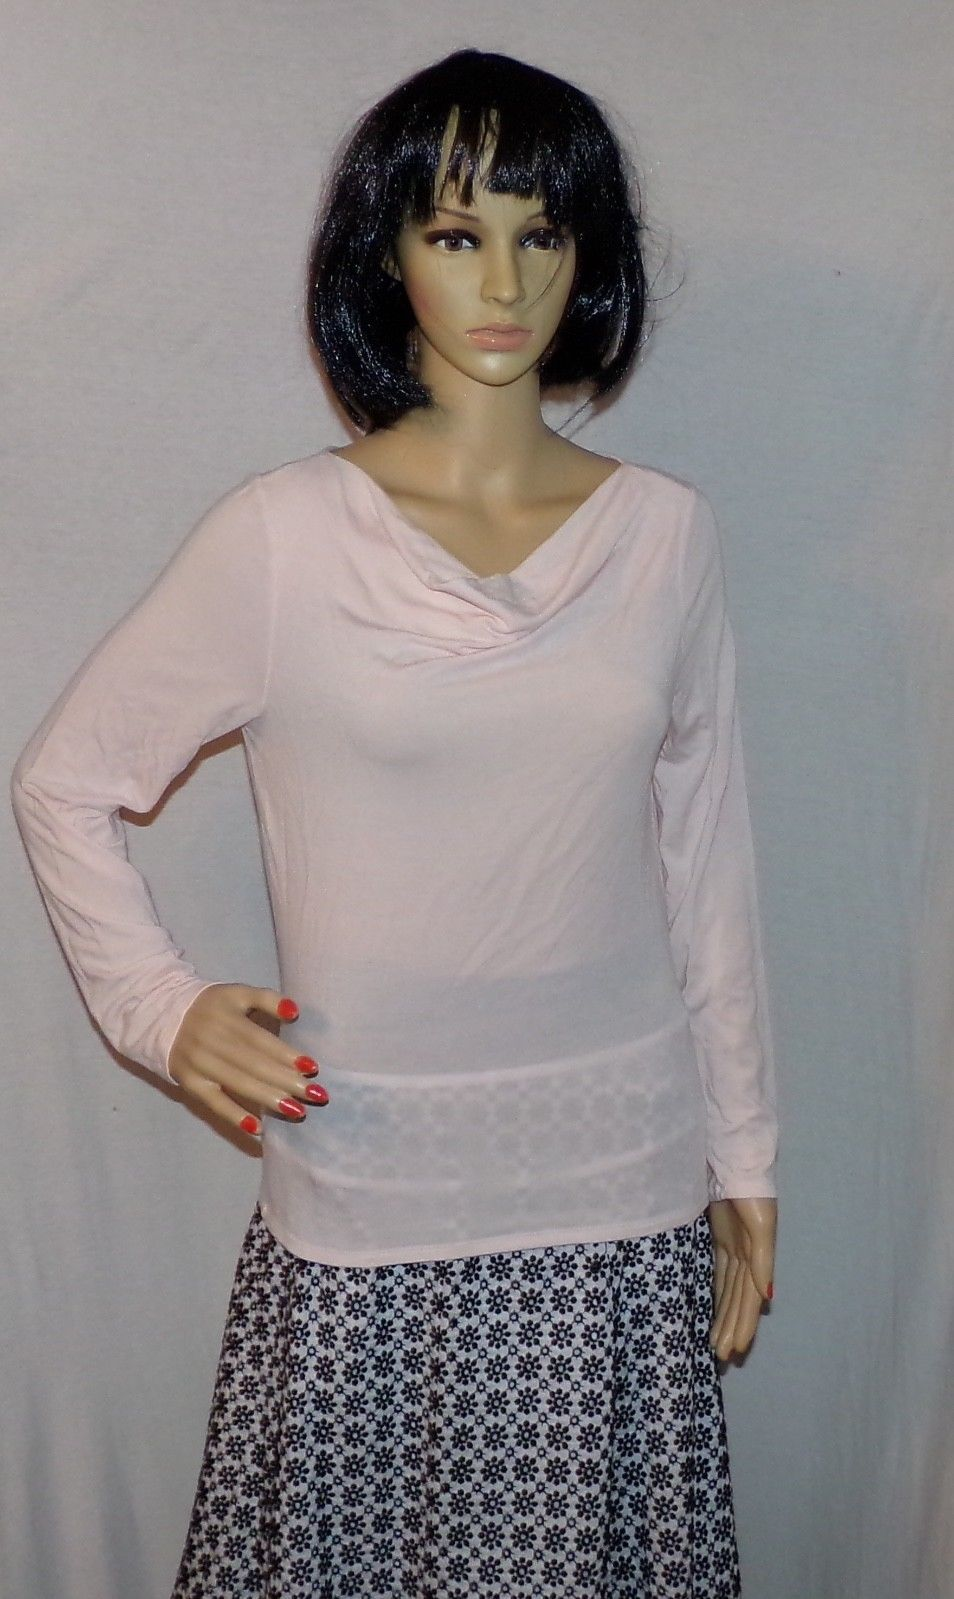 Woman's Top Pink Blouse Stretch to Fit Size M Long Sleeved by The GAP